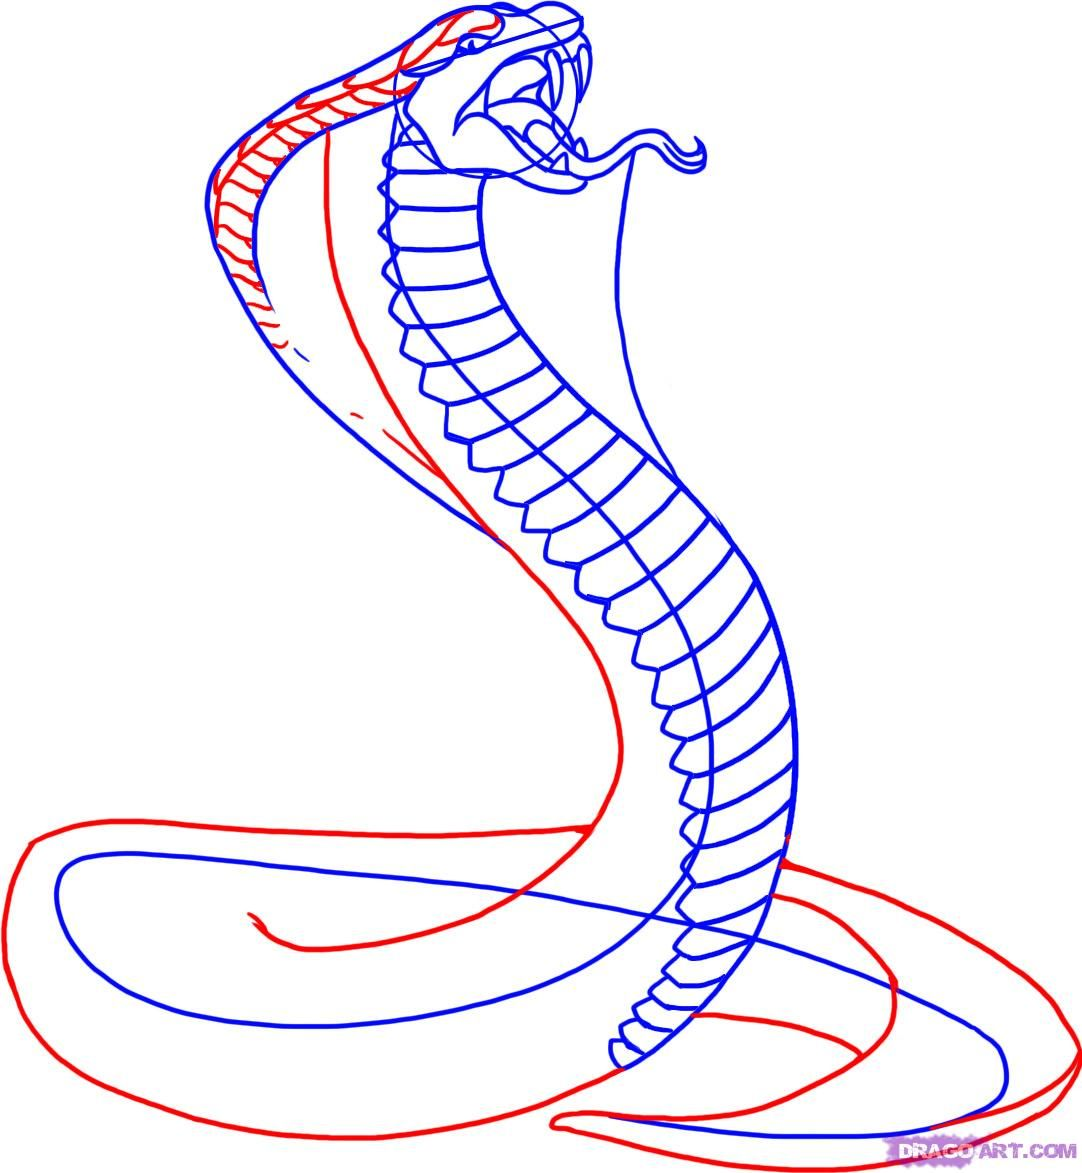 How to draw a snake | snake | Pinterest | King cobra ...